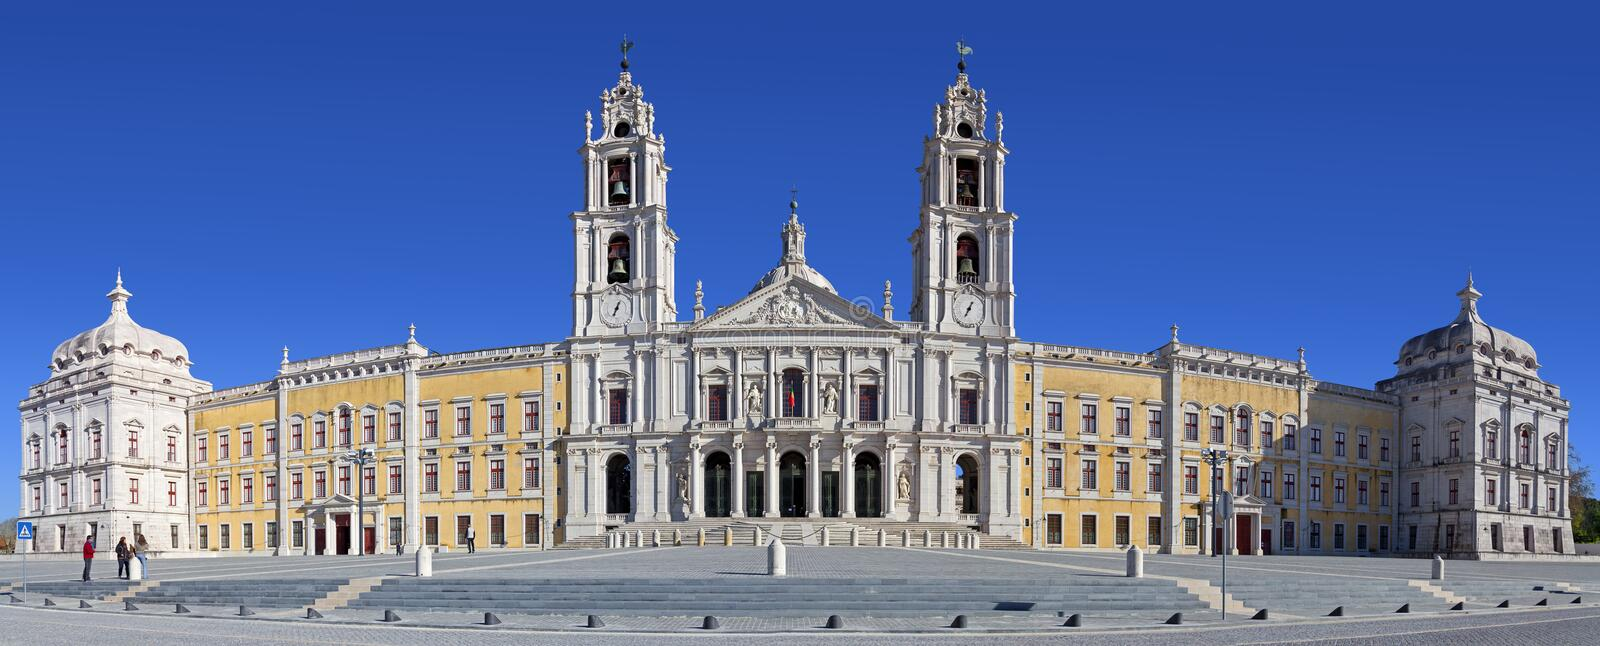 Mafra National Palace, Convent and Basilica. Mafra, Portugal - September 02, 2013: Tourists stroll in front of the Mafra National Palace, Convent and Basilica stock photos